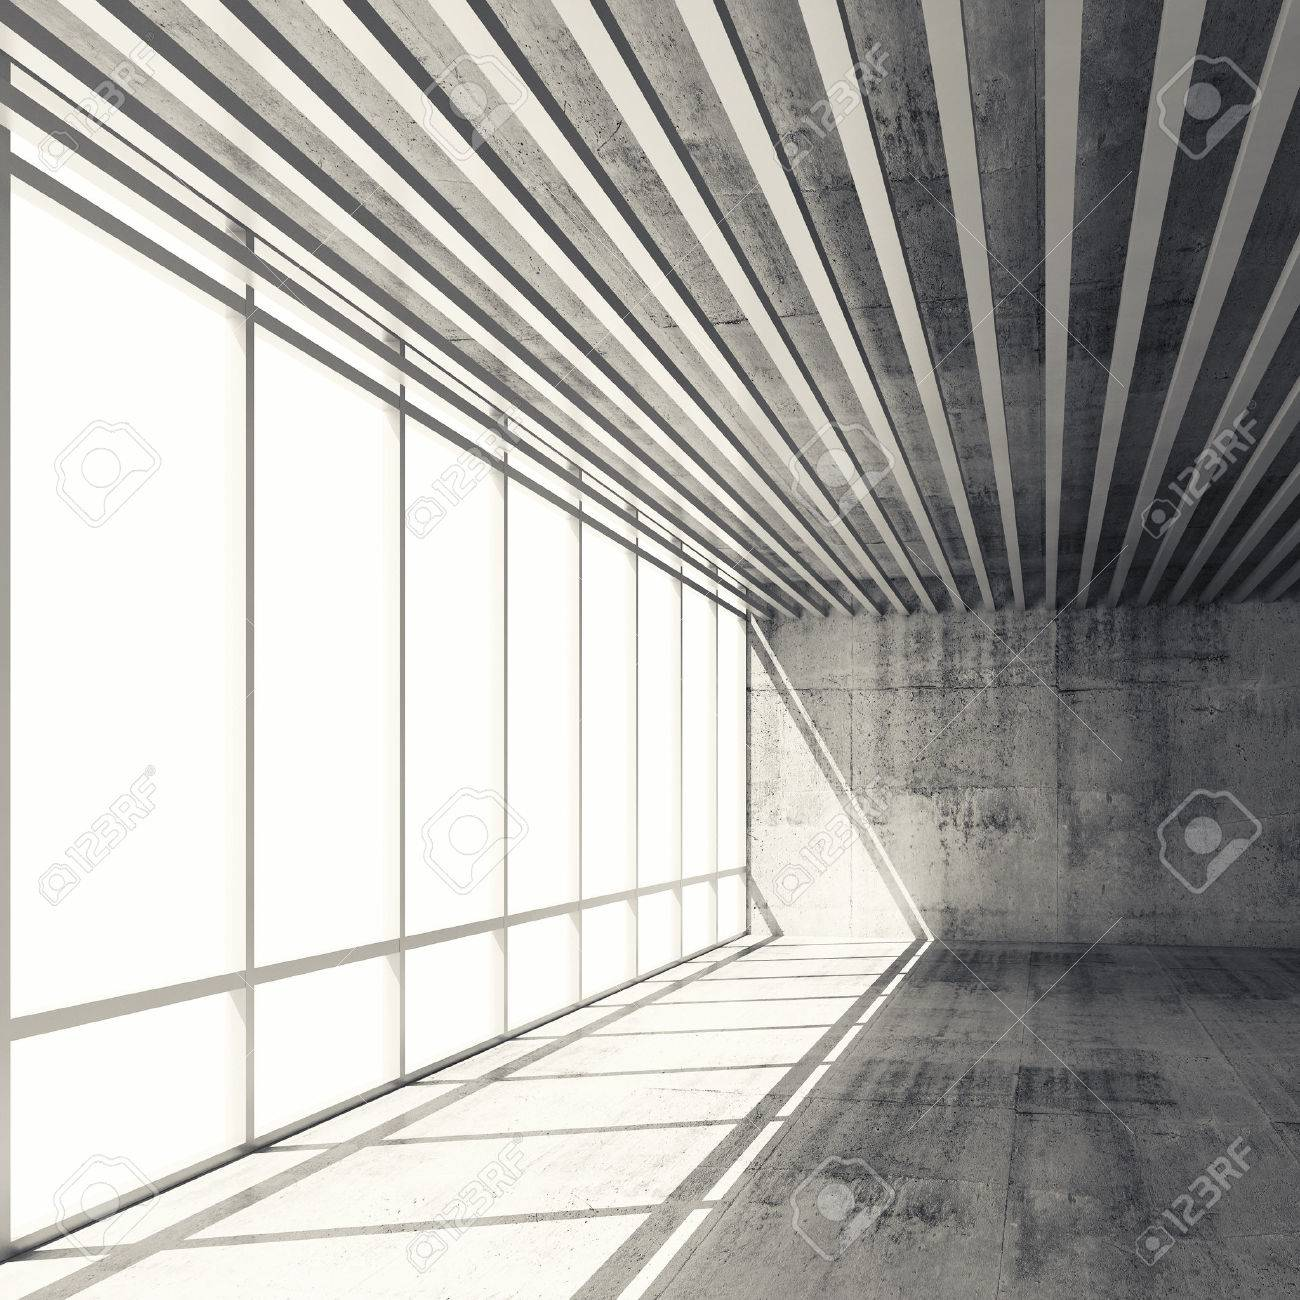 abstract architecture background empty interior with bright windows and gray concrete walls 3d illustration